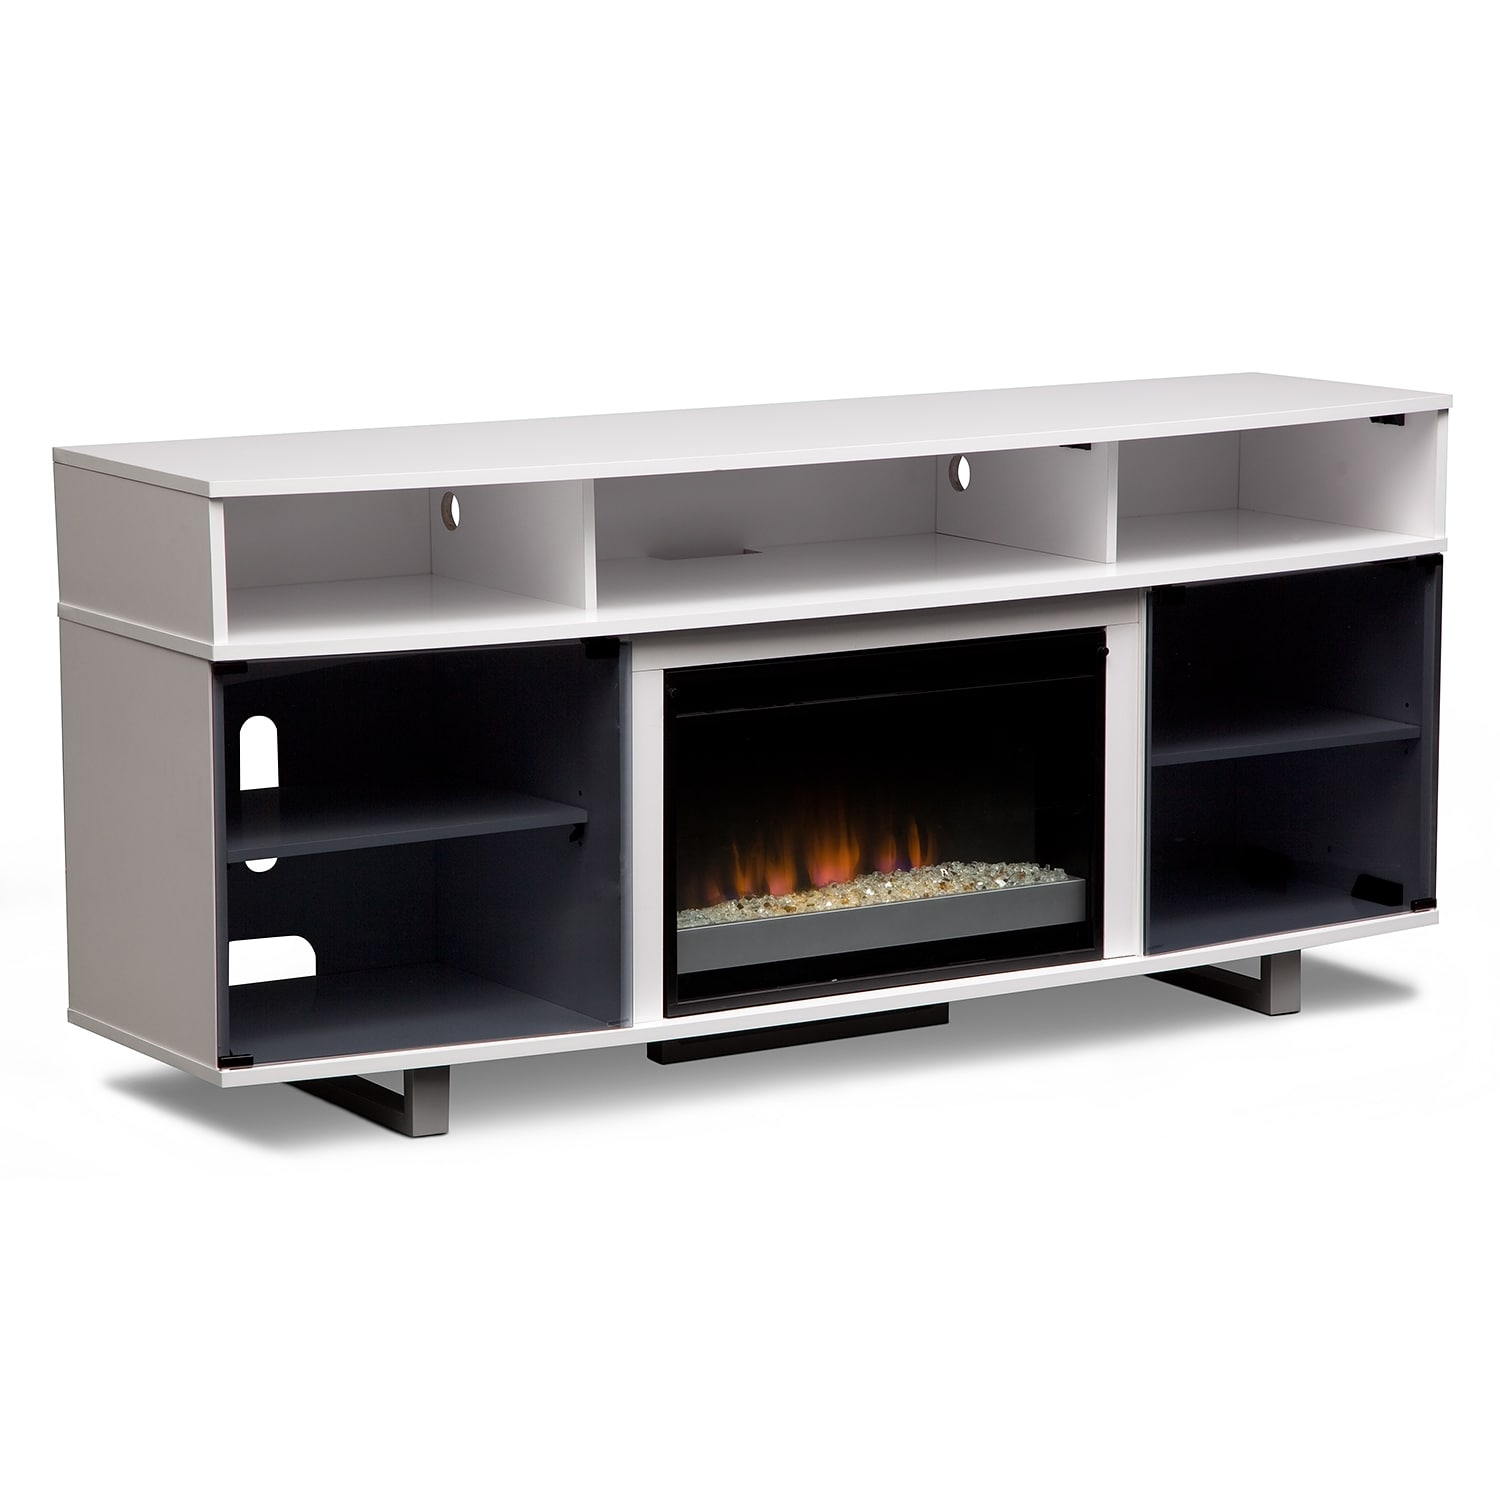 Image Result For Electric Fireplace Units